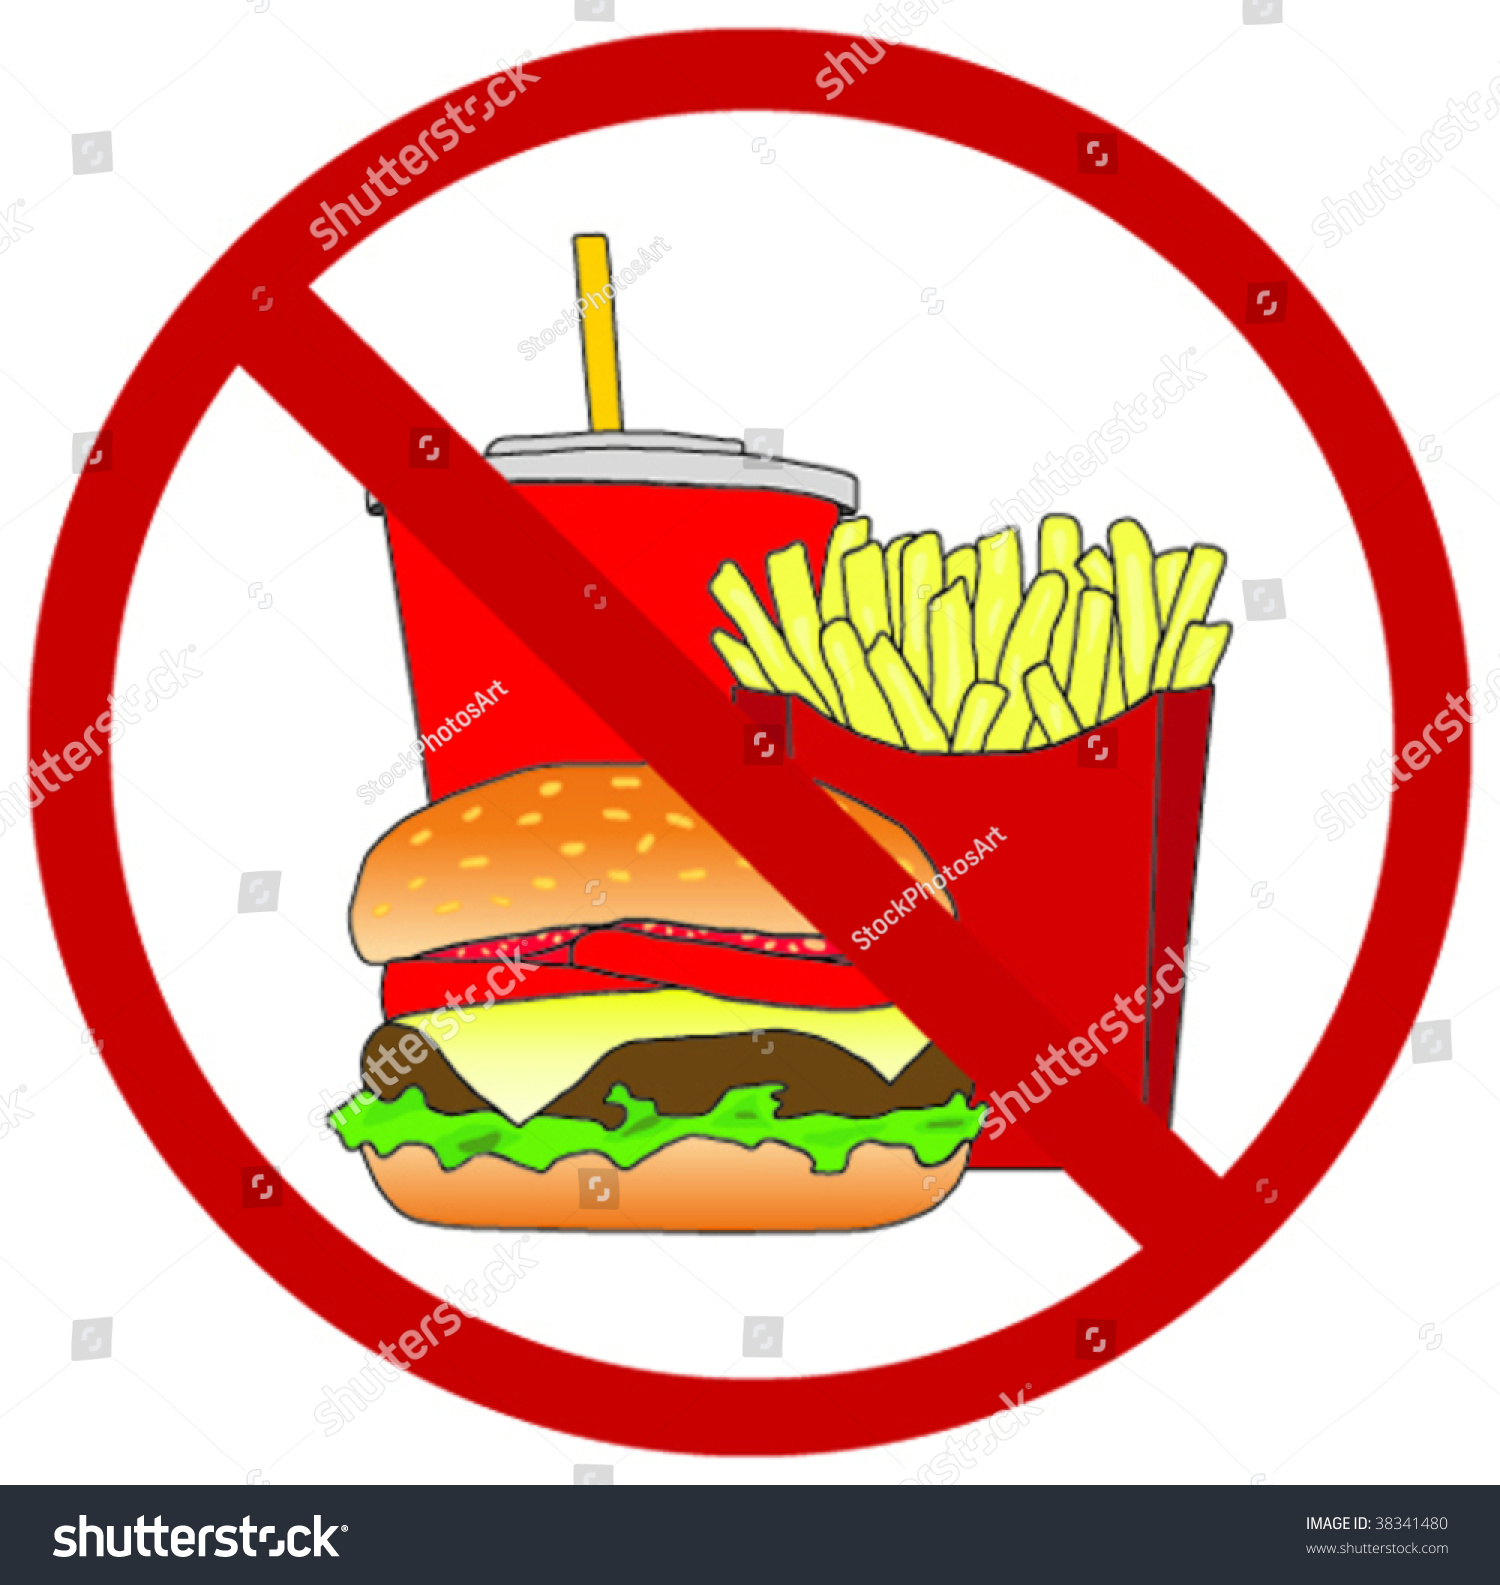 prohibition of fast food Prohibition of fast food  topics: nutrition  there are some advantages and disadvantages about banning fast food restaurants because of various reasons.